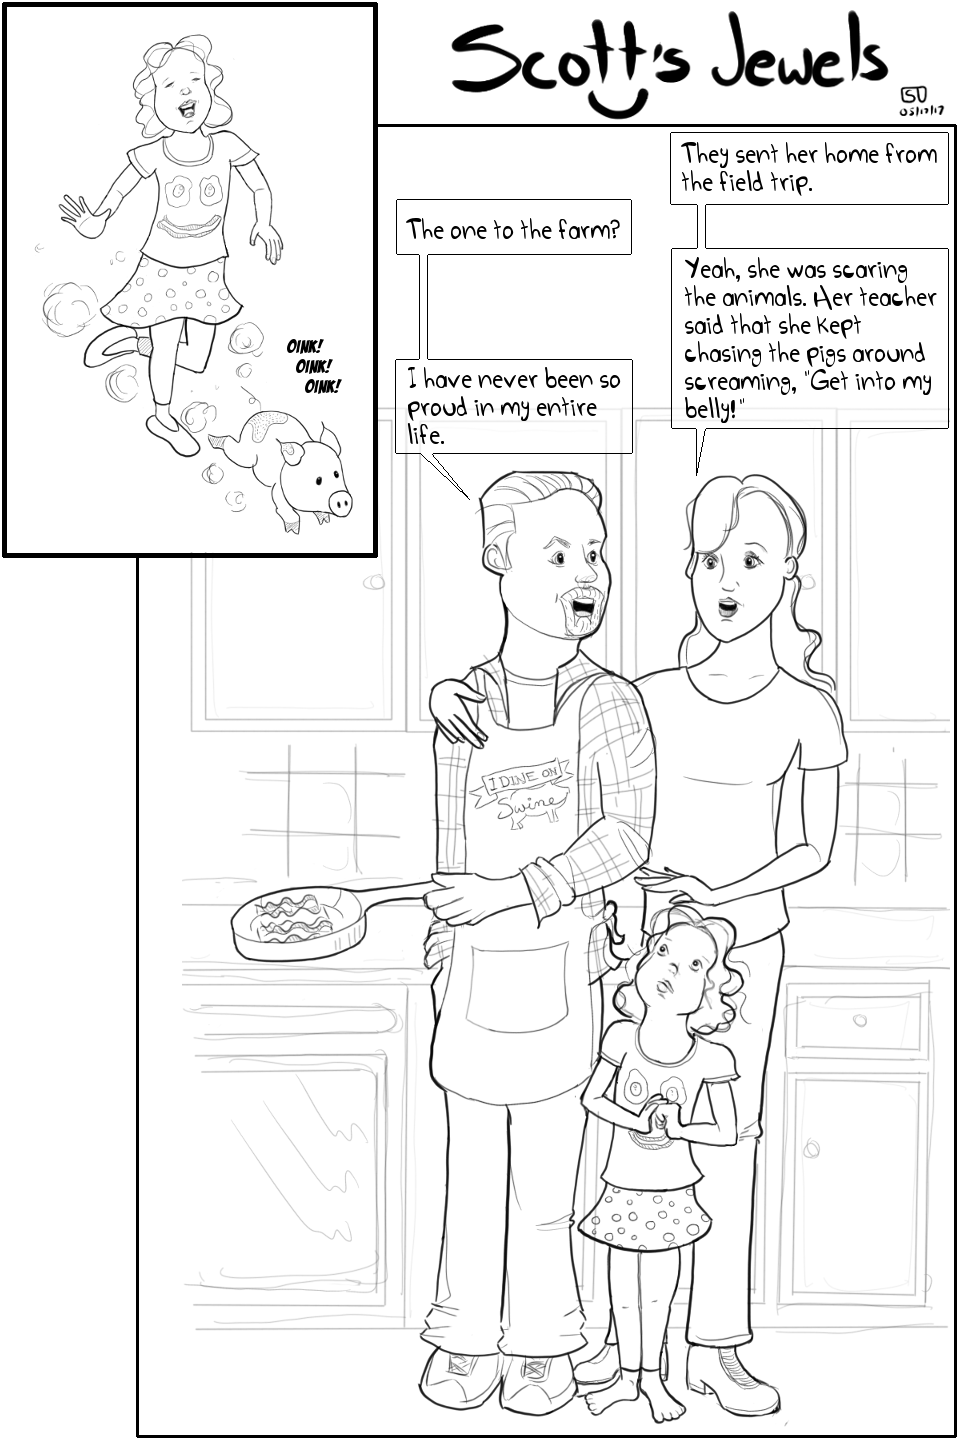 other white meat pork pig lover farm food bacon love bacon cooking grilling parenting comic